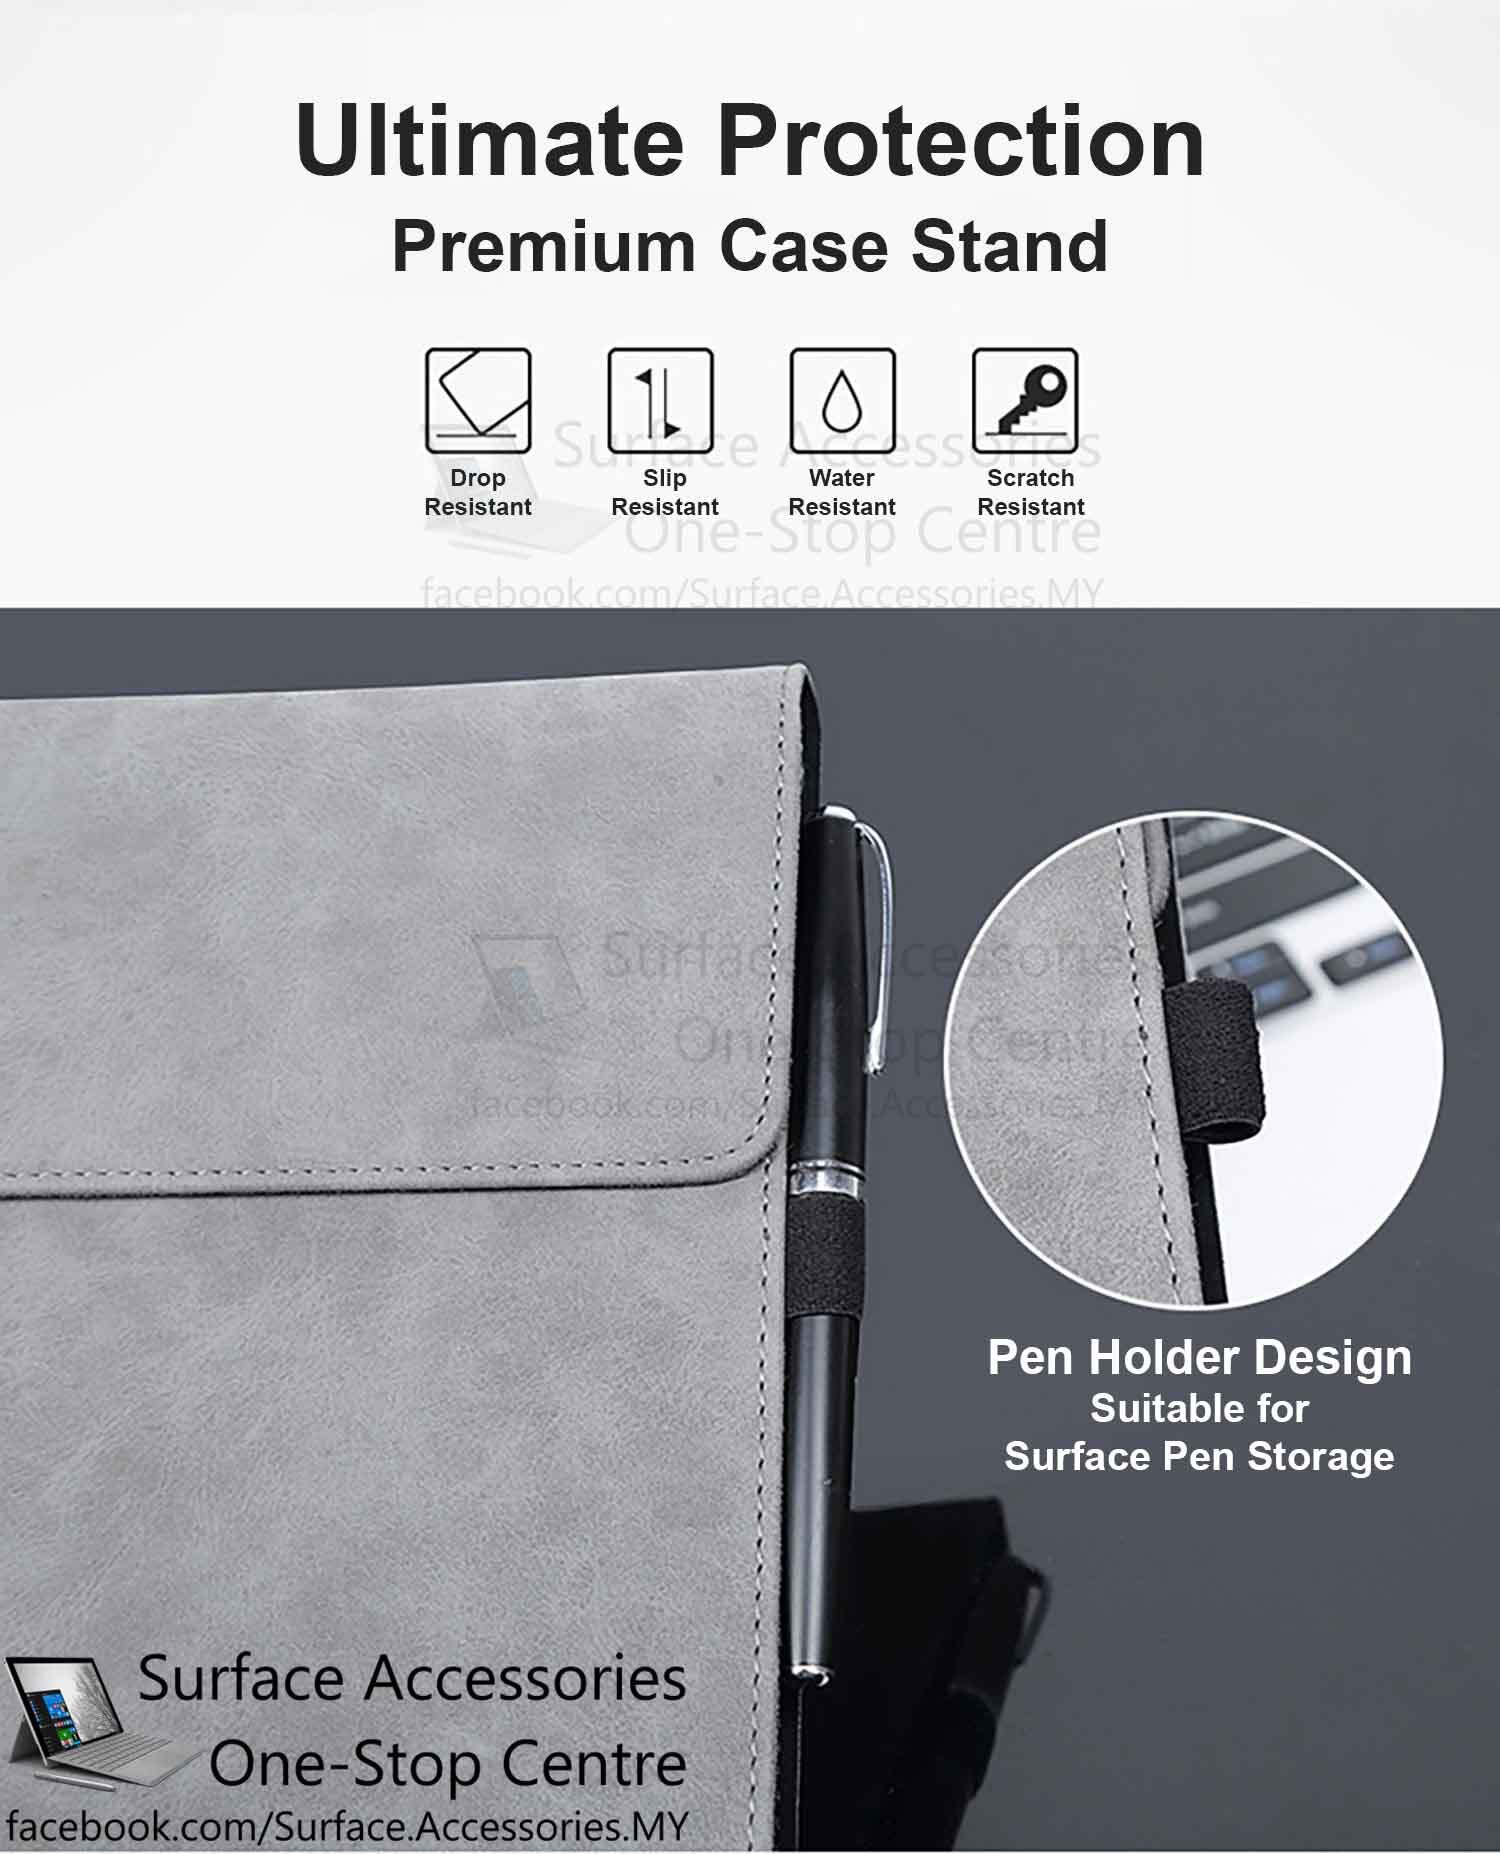 [MALAYSIA]Microsoft Surface Pro X Casing Surface Pro X Cover Premium Ultimate Case Stand Flip Case